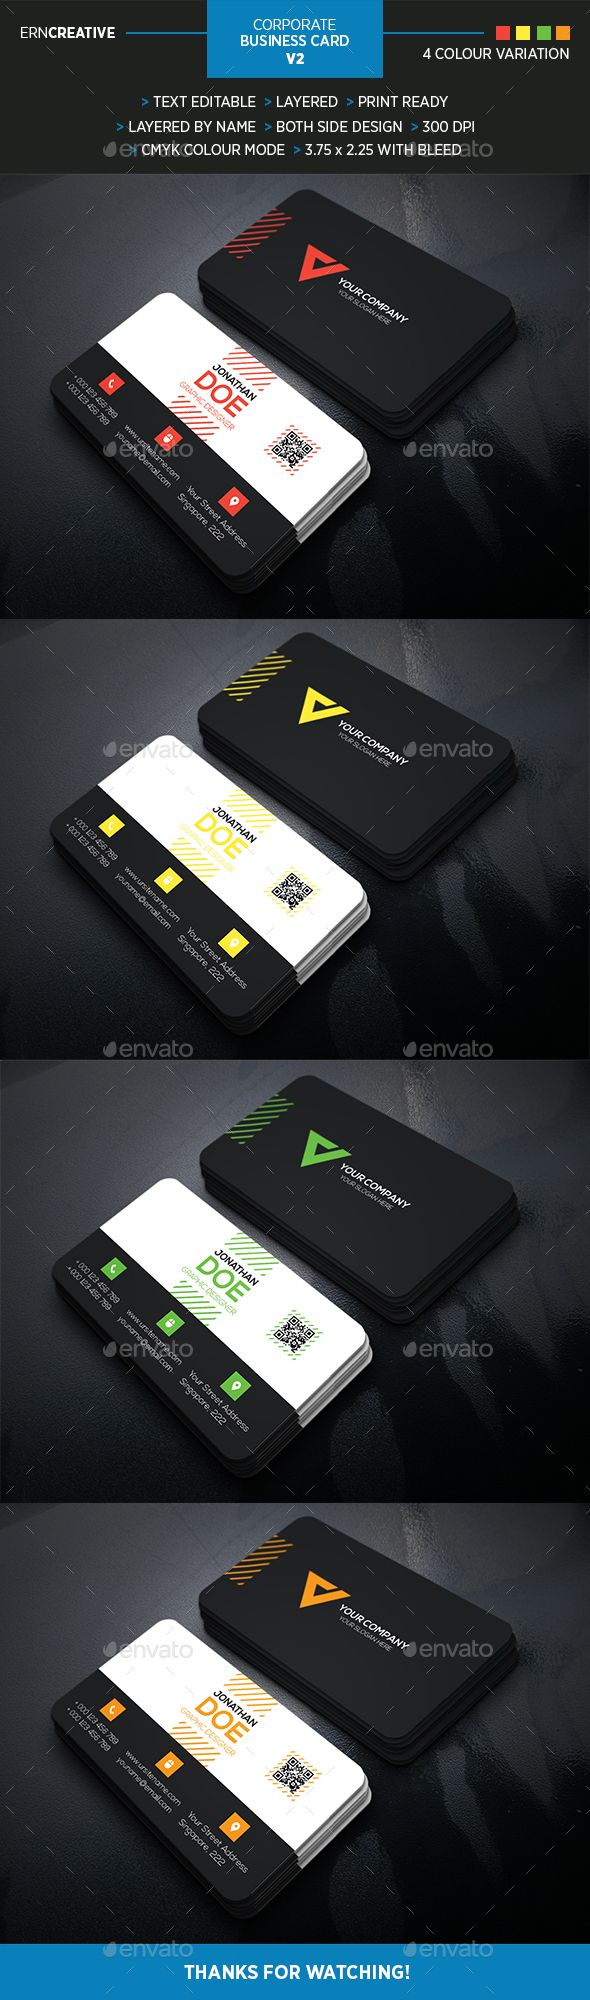 Corporate Business Card V2 - Business Cards Print Templates